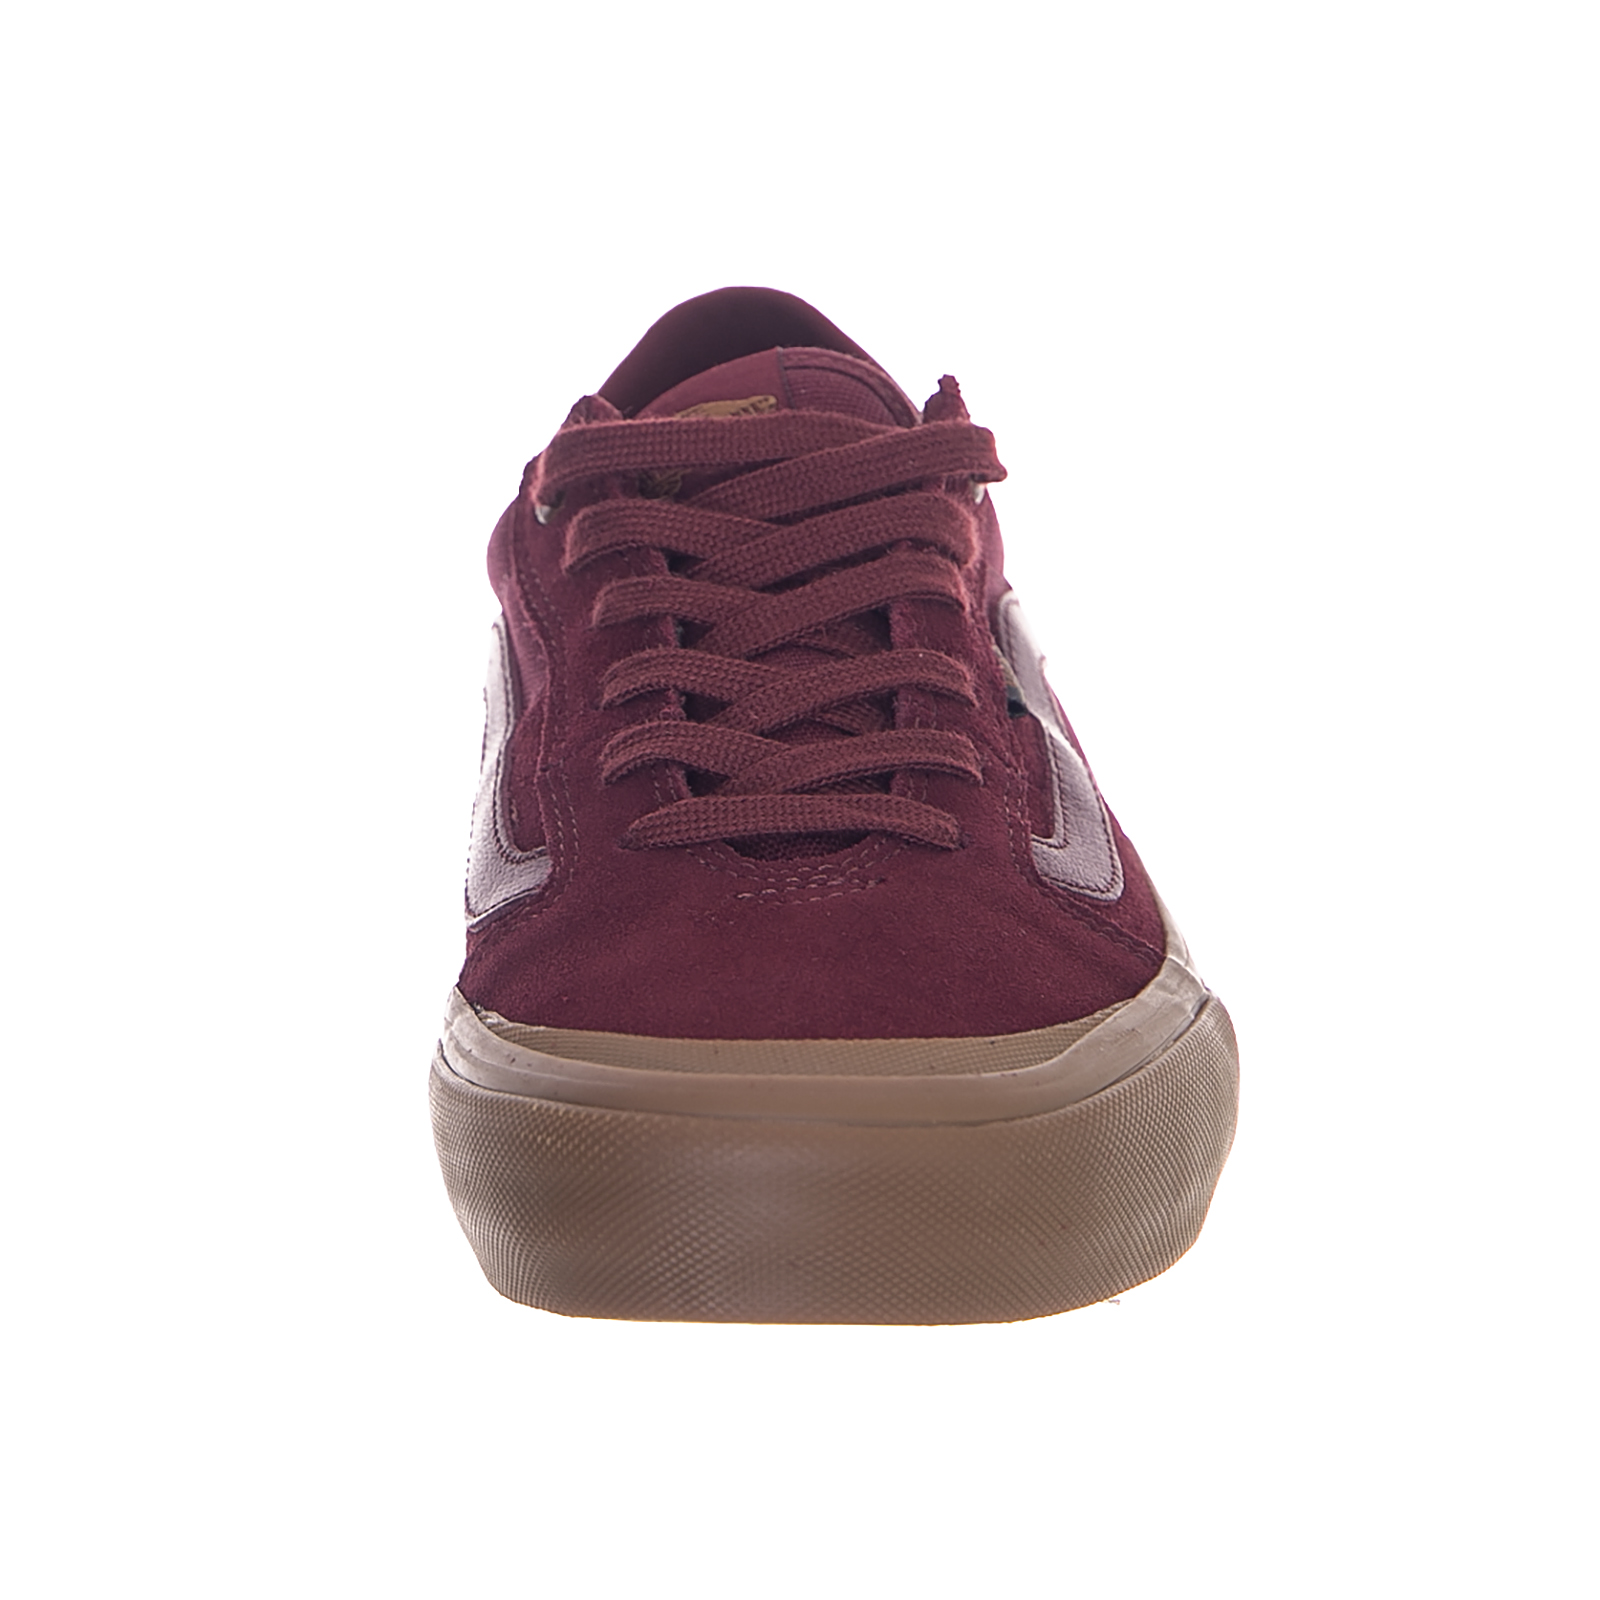 112 Pro Burgundy camouflage Sneakers Style Royal Vans Port Gum xHwPx